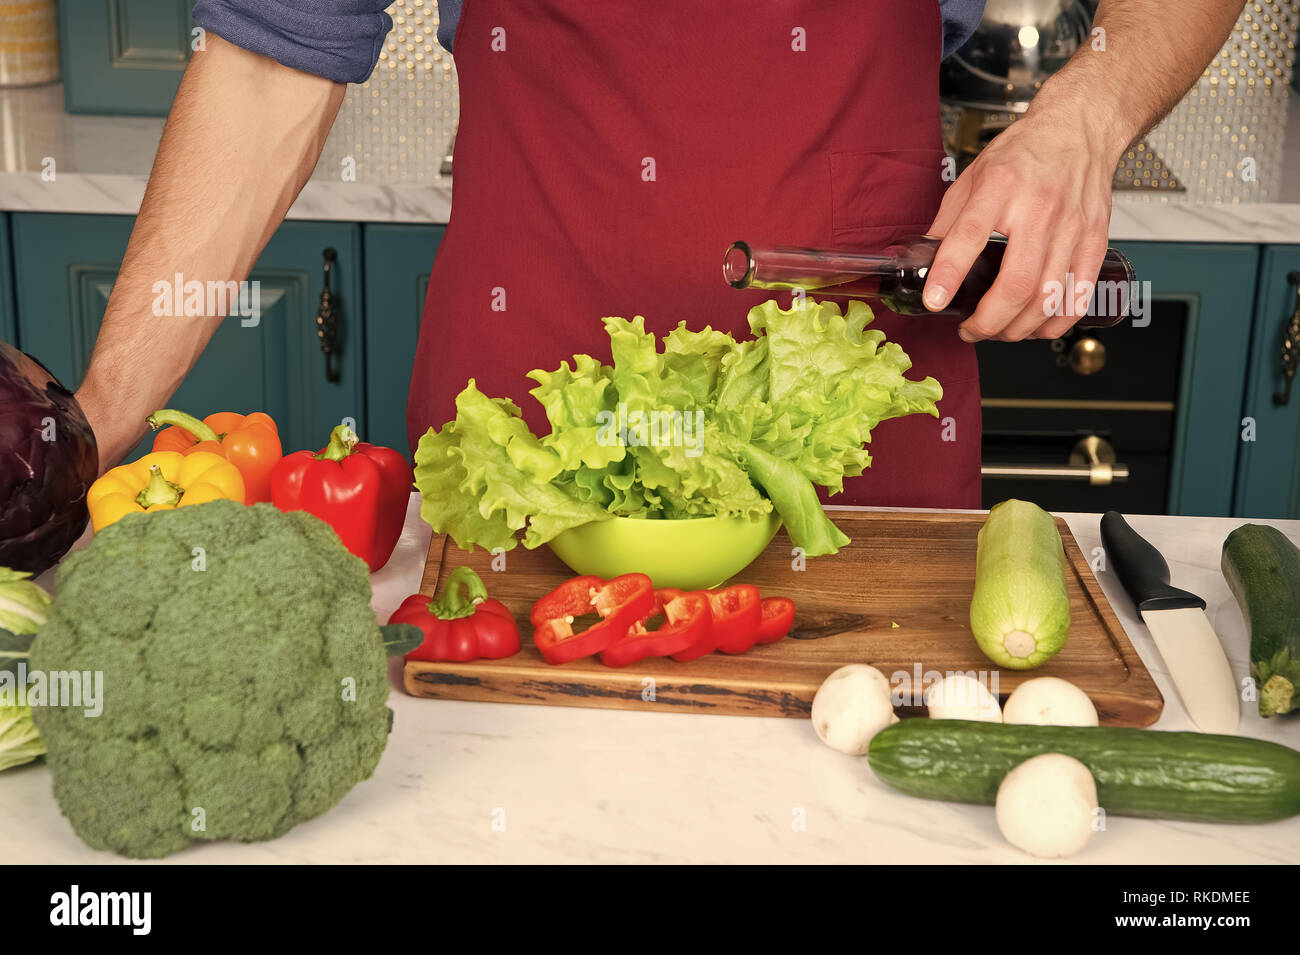 Measure accurately. Nothing wrecks dish like a double portion of vinegar or oil. Hands of chef male pouring lettuce with vinegar or oil without measuring. Measuring issues can cause wasting products. - Stock Image